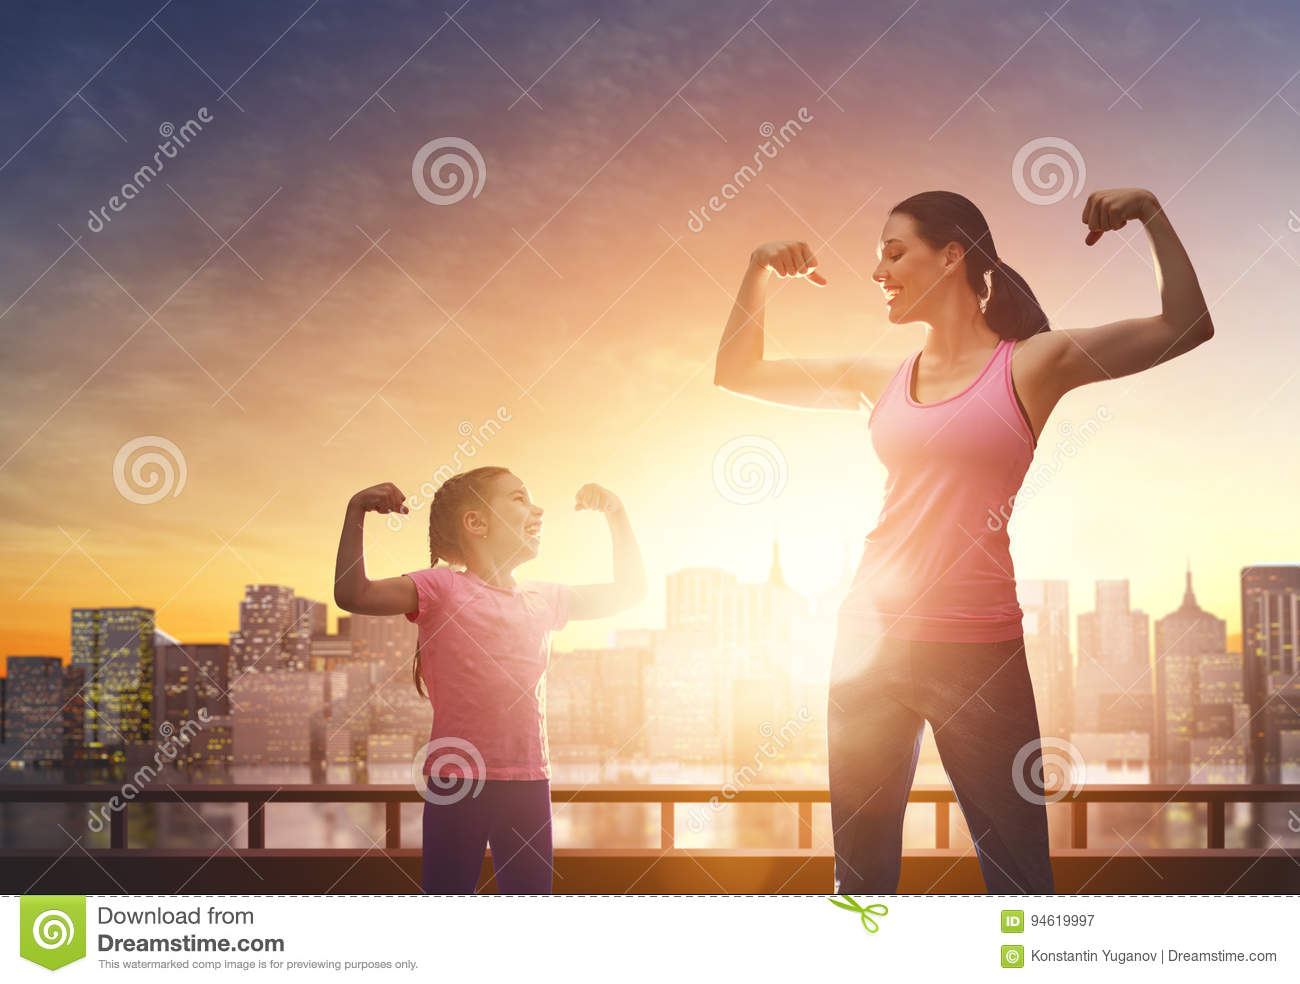 Download Healthy Lifestyle. Family Sport. Stock Image - Image of family, exercise: 94619997